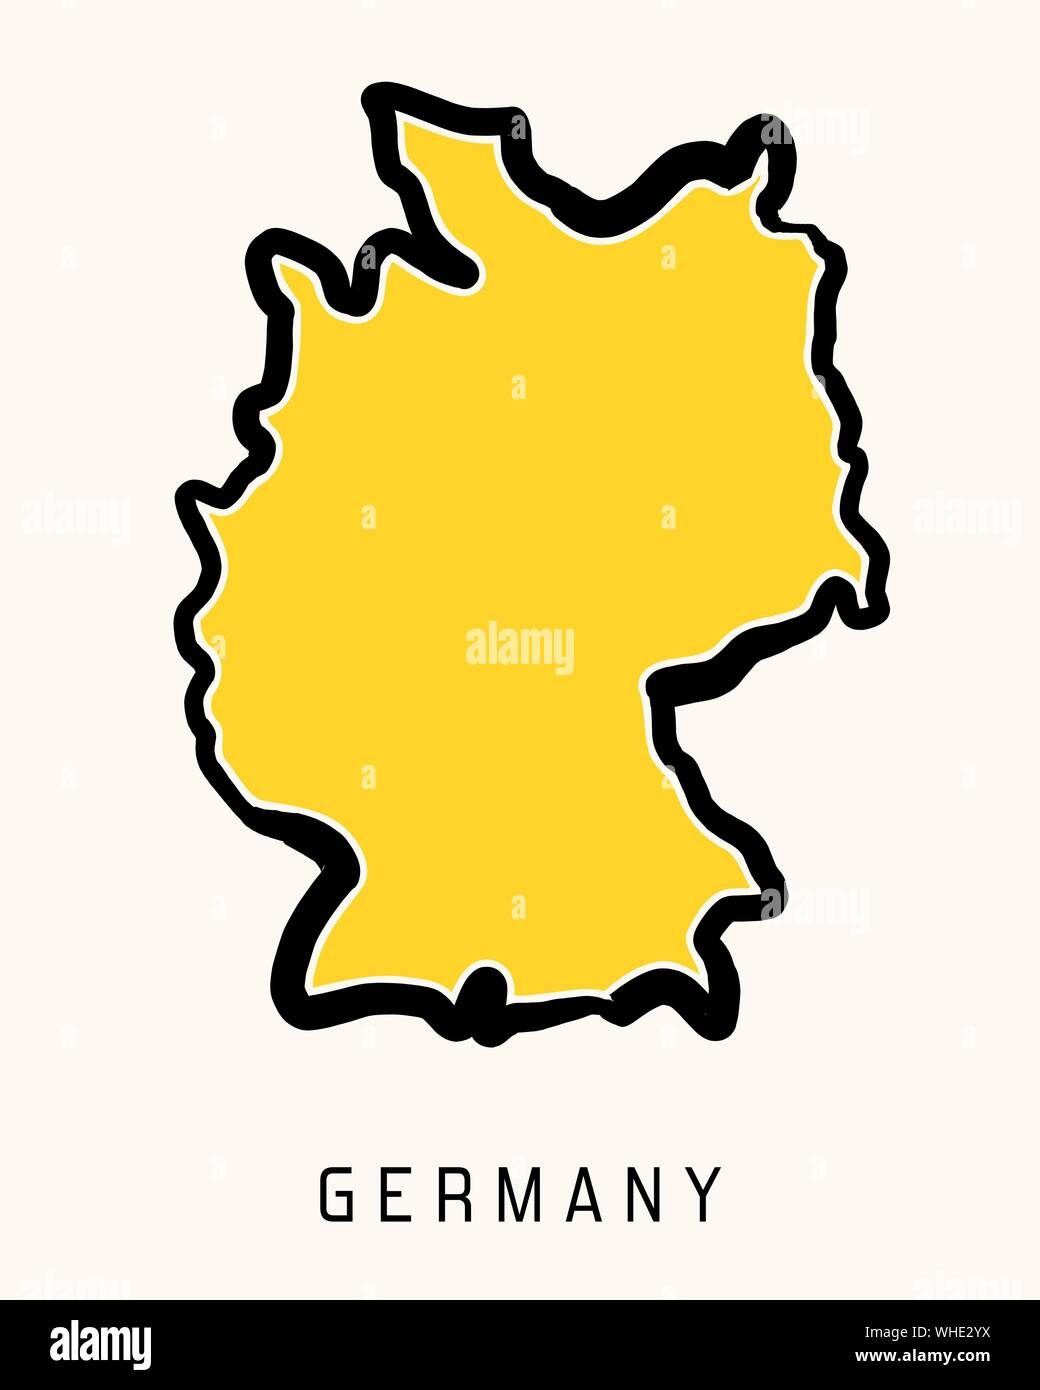 simple map of germany Germany Simple Map Outline Simplified Country Shape Map Vector